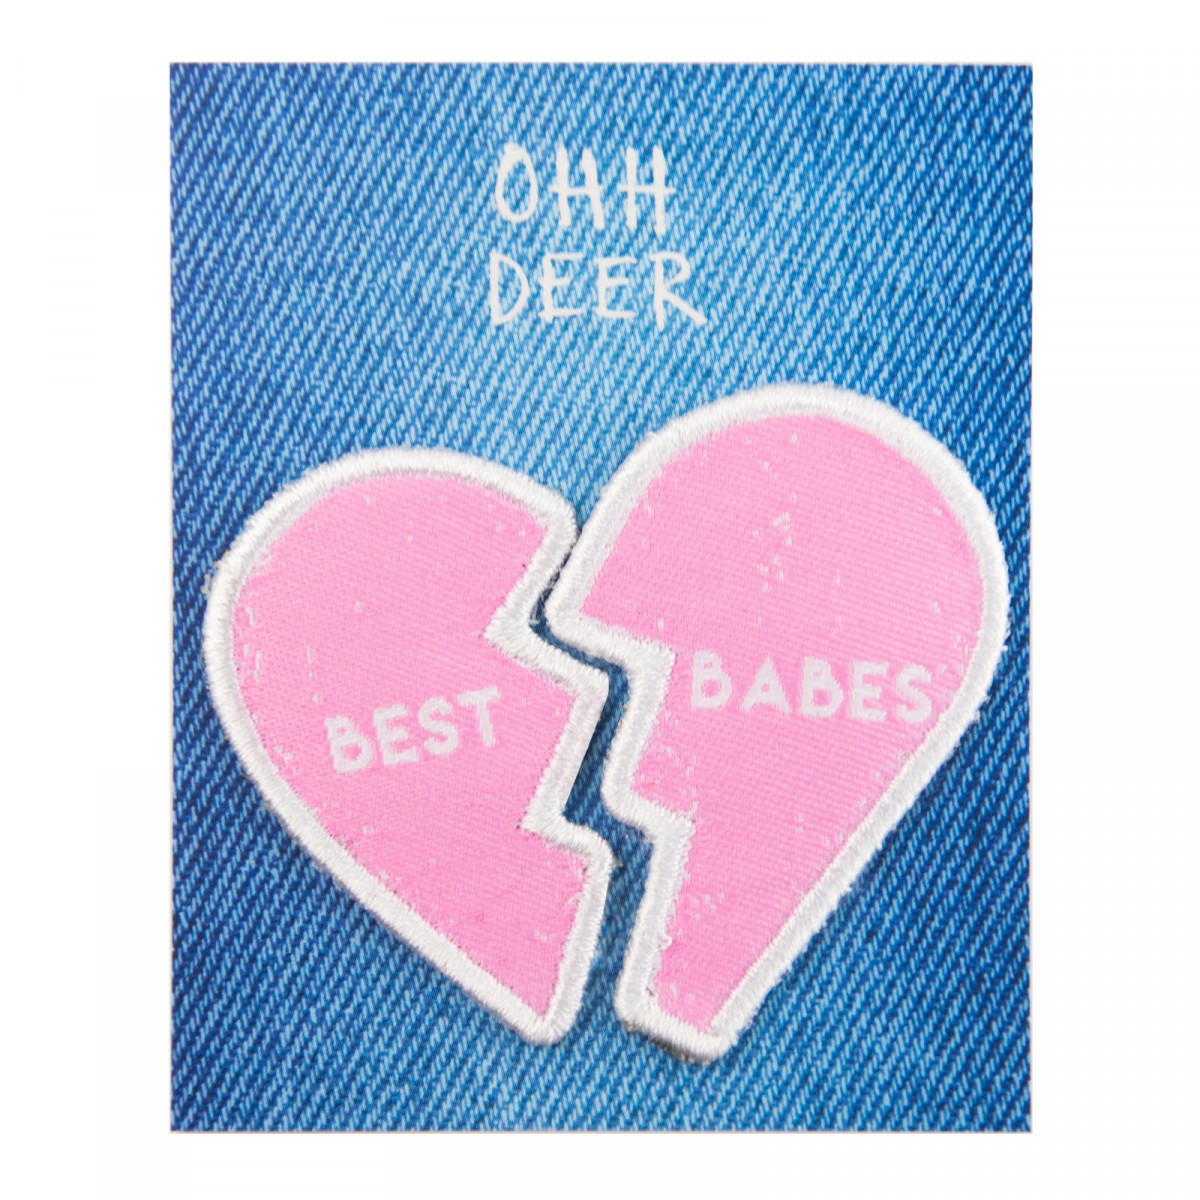 Best Babes Patches - She's your best friend at the end of the day, so give her a friendship patch! You'll both look super cute with these iron-on bad boys.